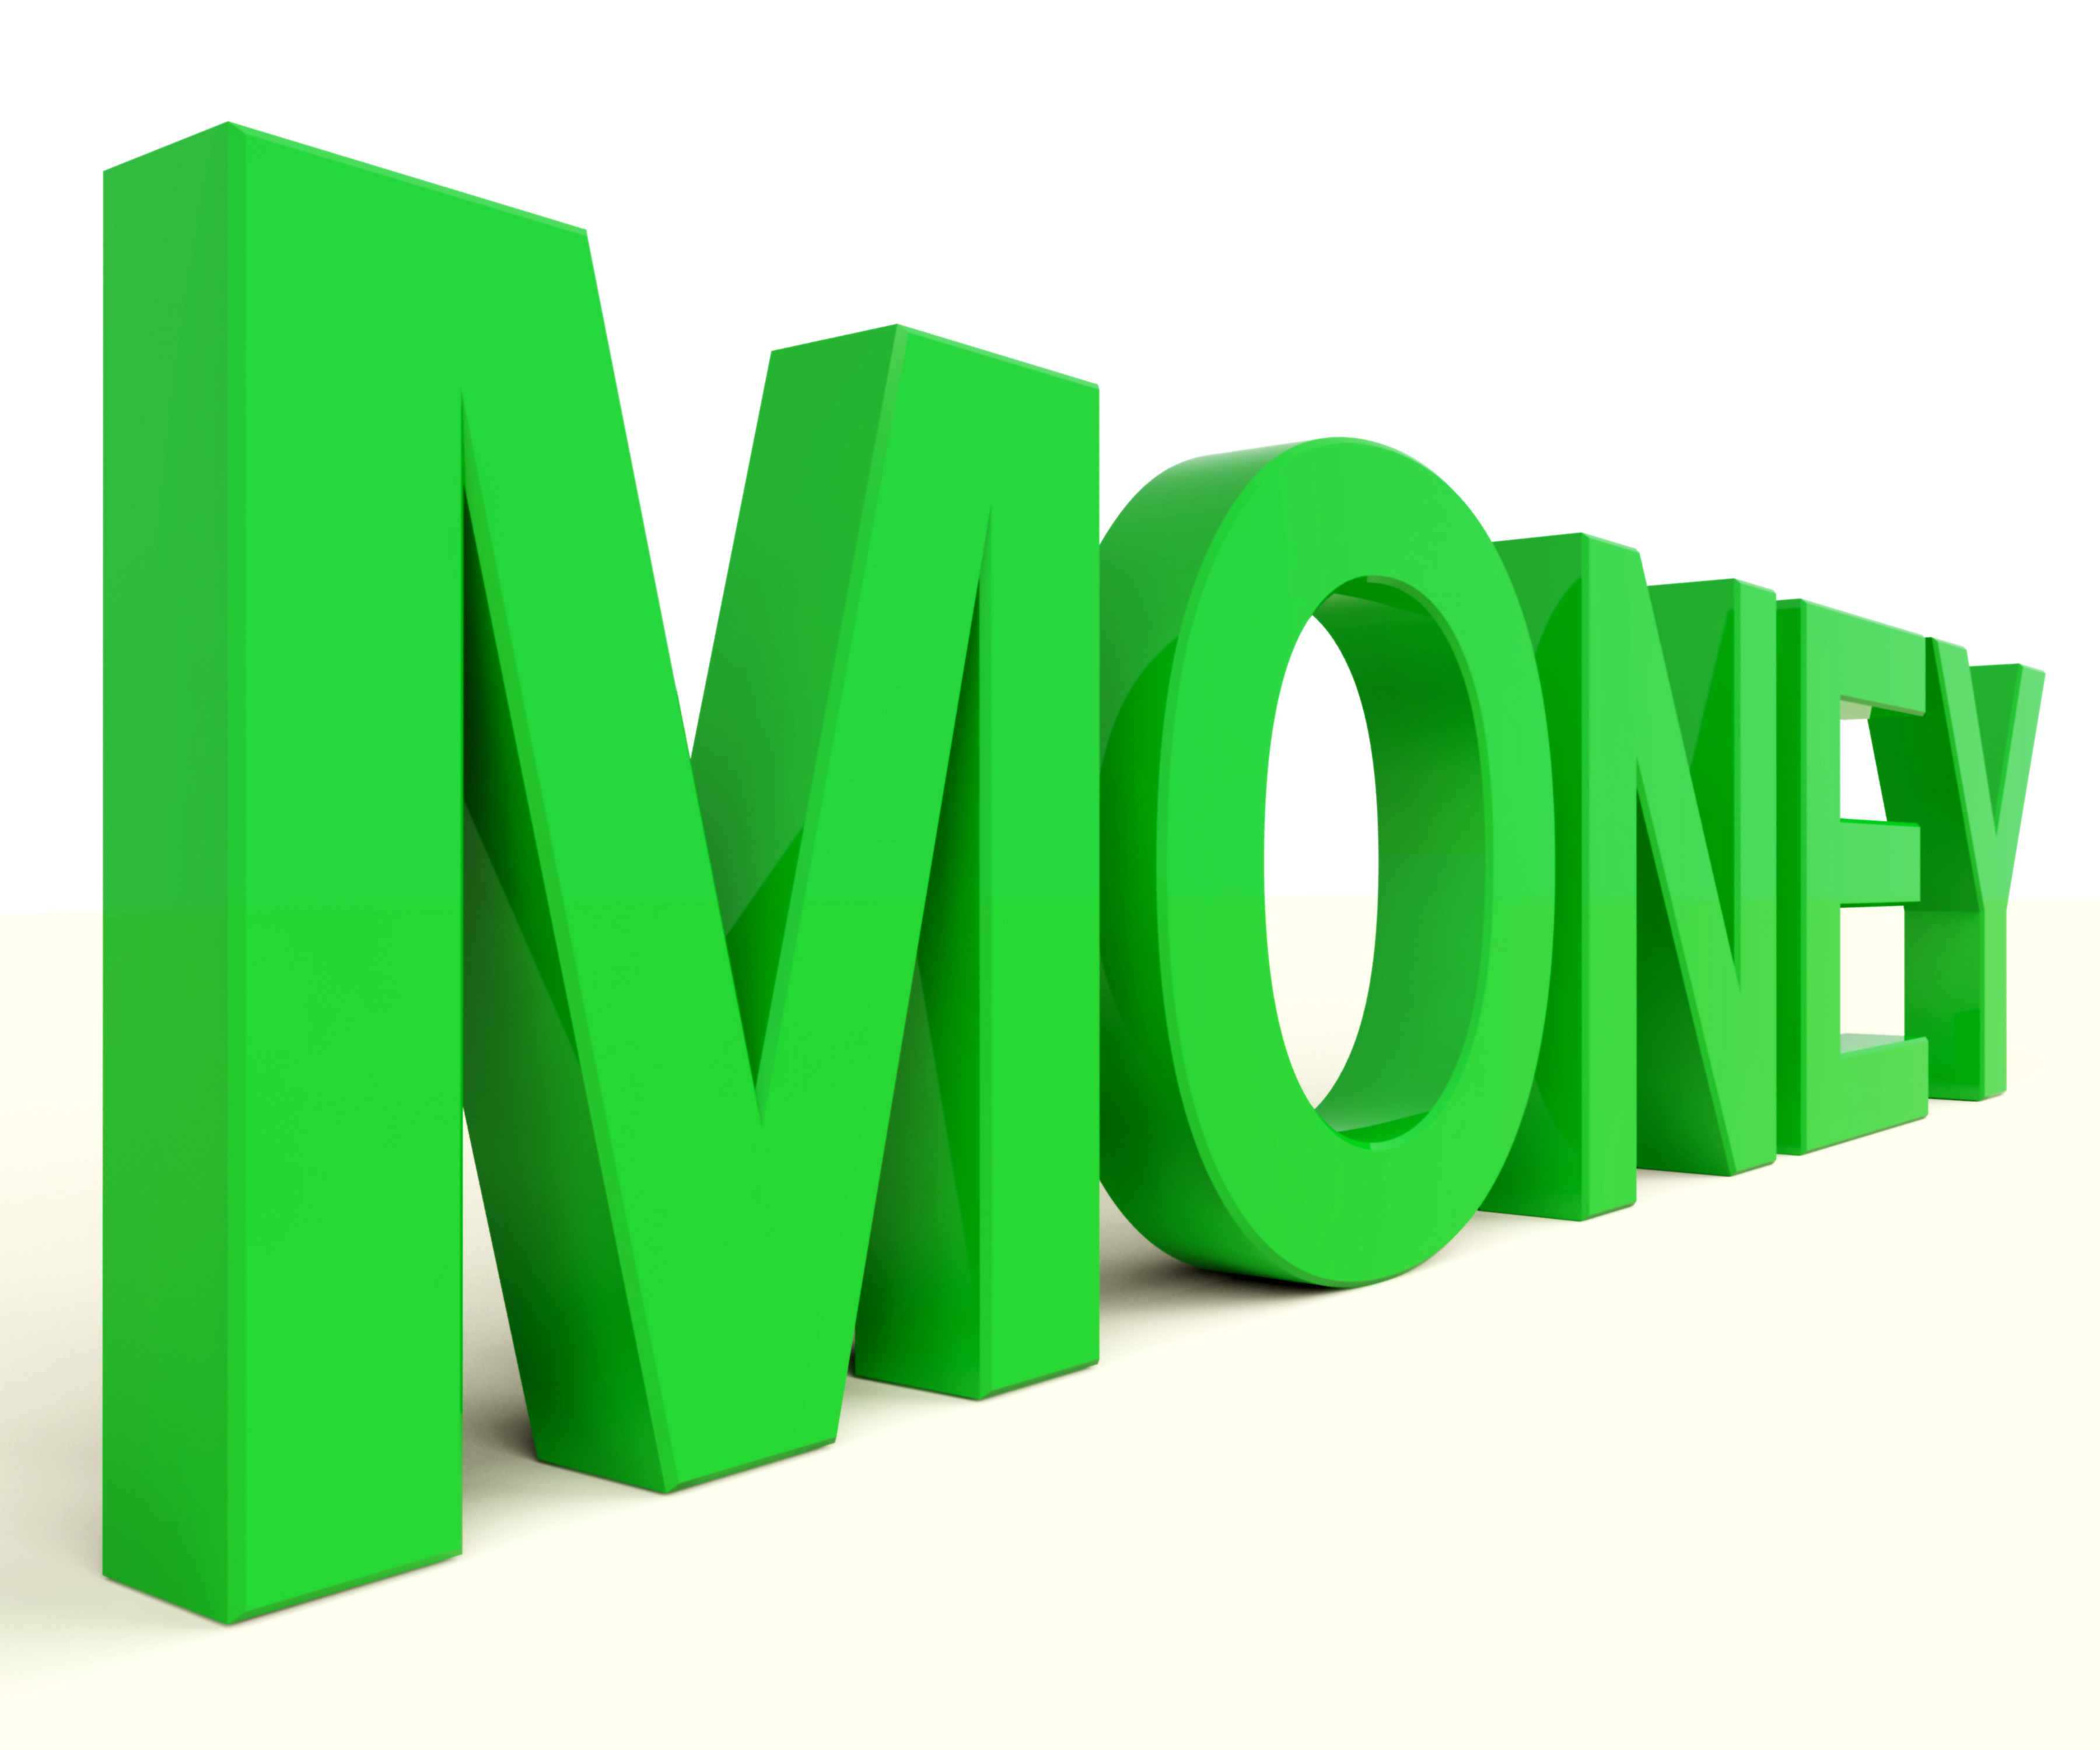 Money Text In Green As Symbol For Wealth And Finance Third Party